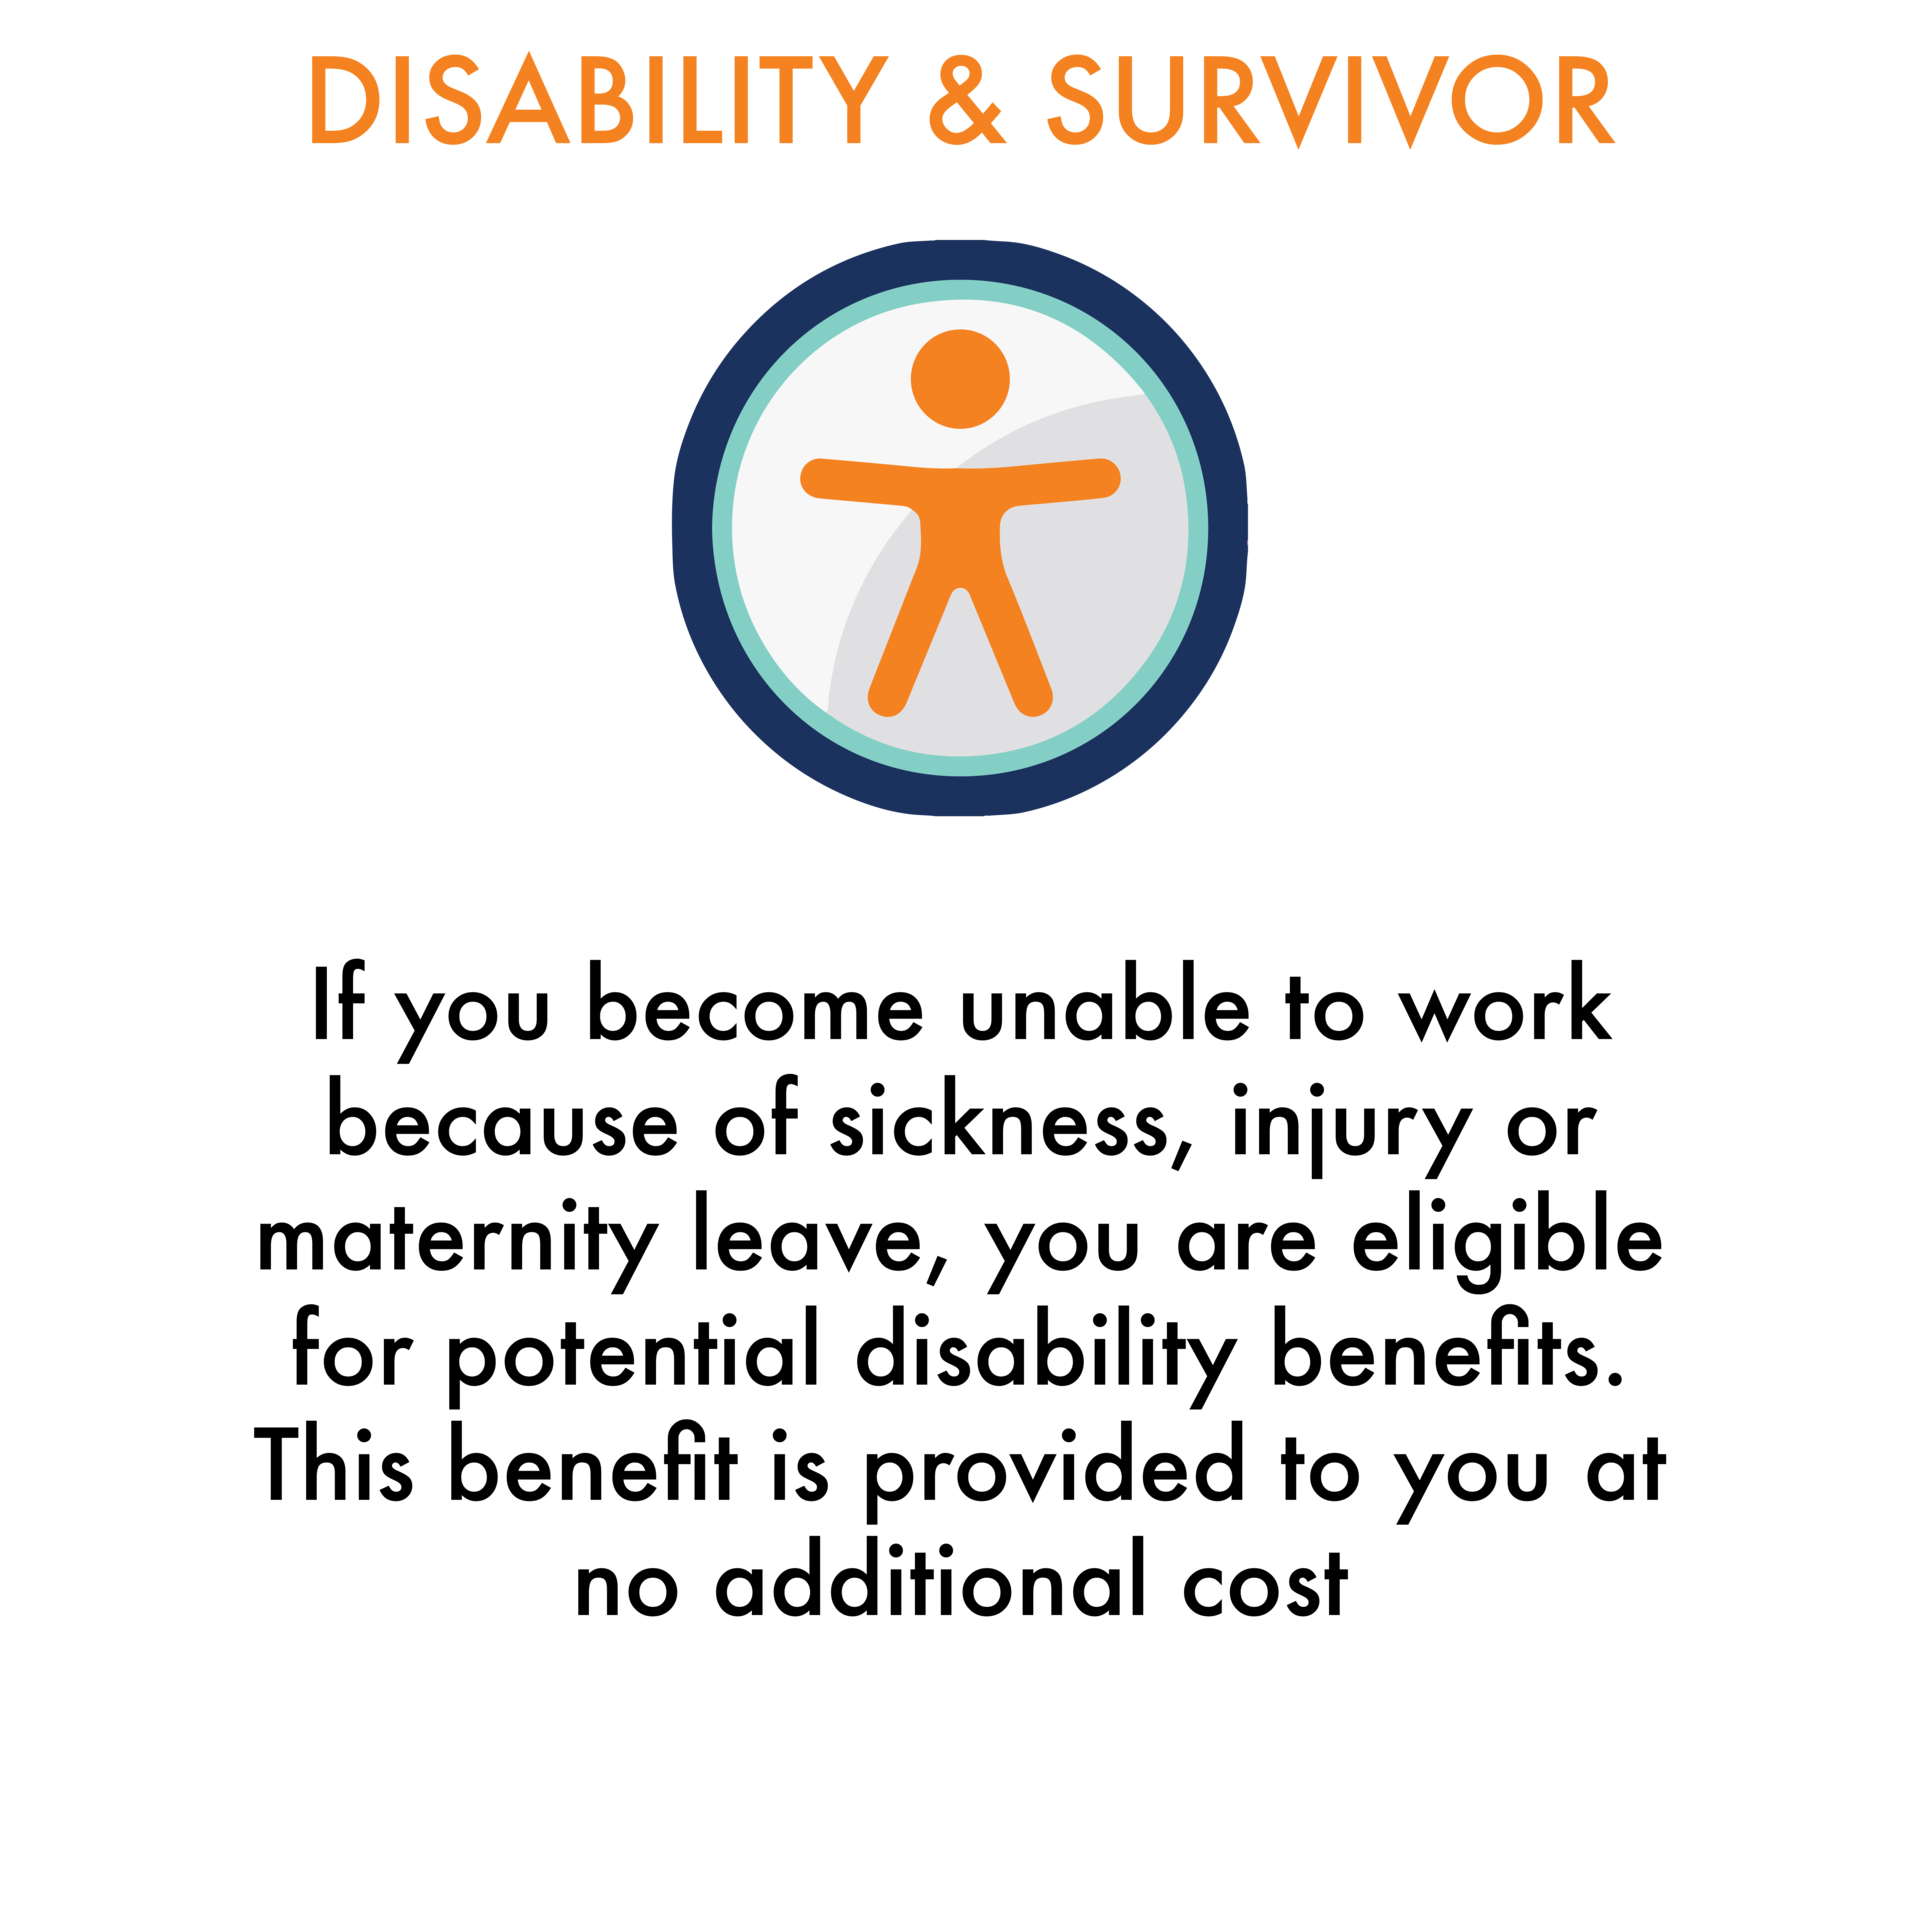 Disability & Survivor: If you become unable to work because of sickness, injury or maternity leave, you are eligible for potential disability benefits. This benefit is provided to you at no additional cost.